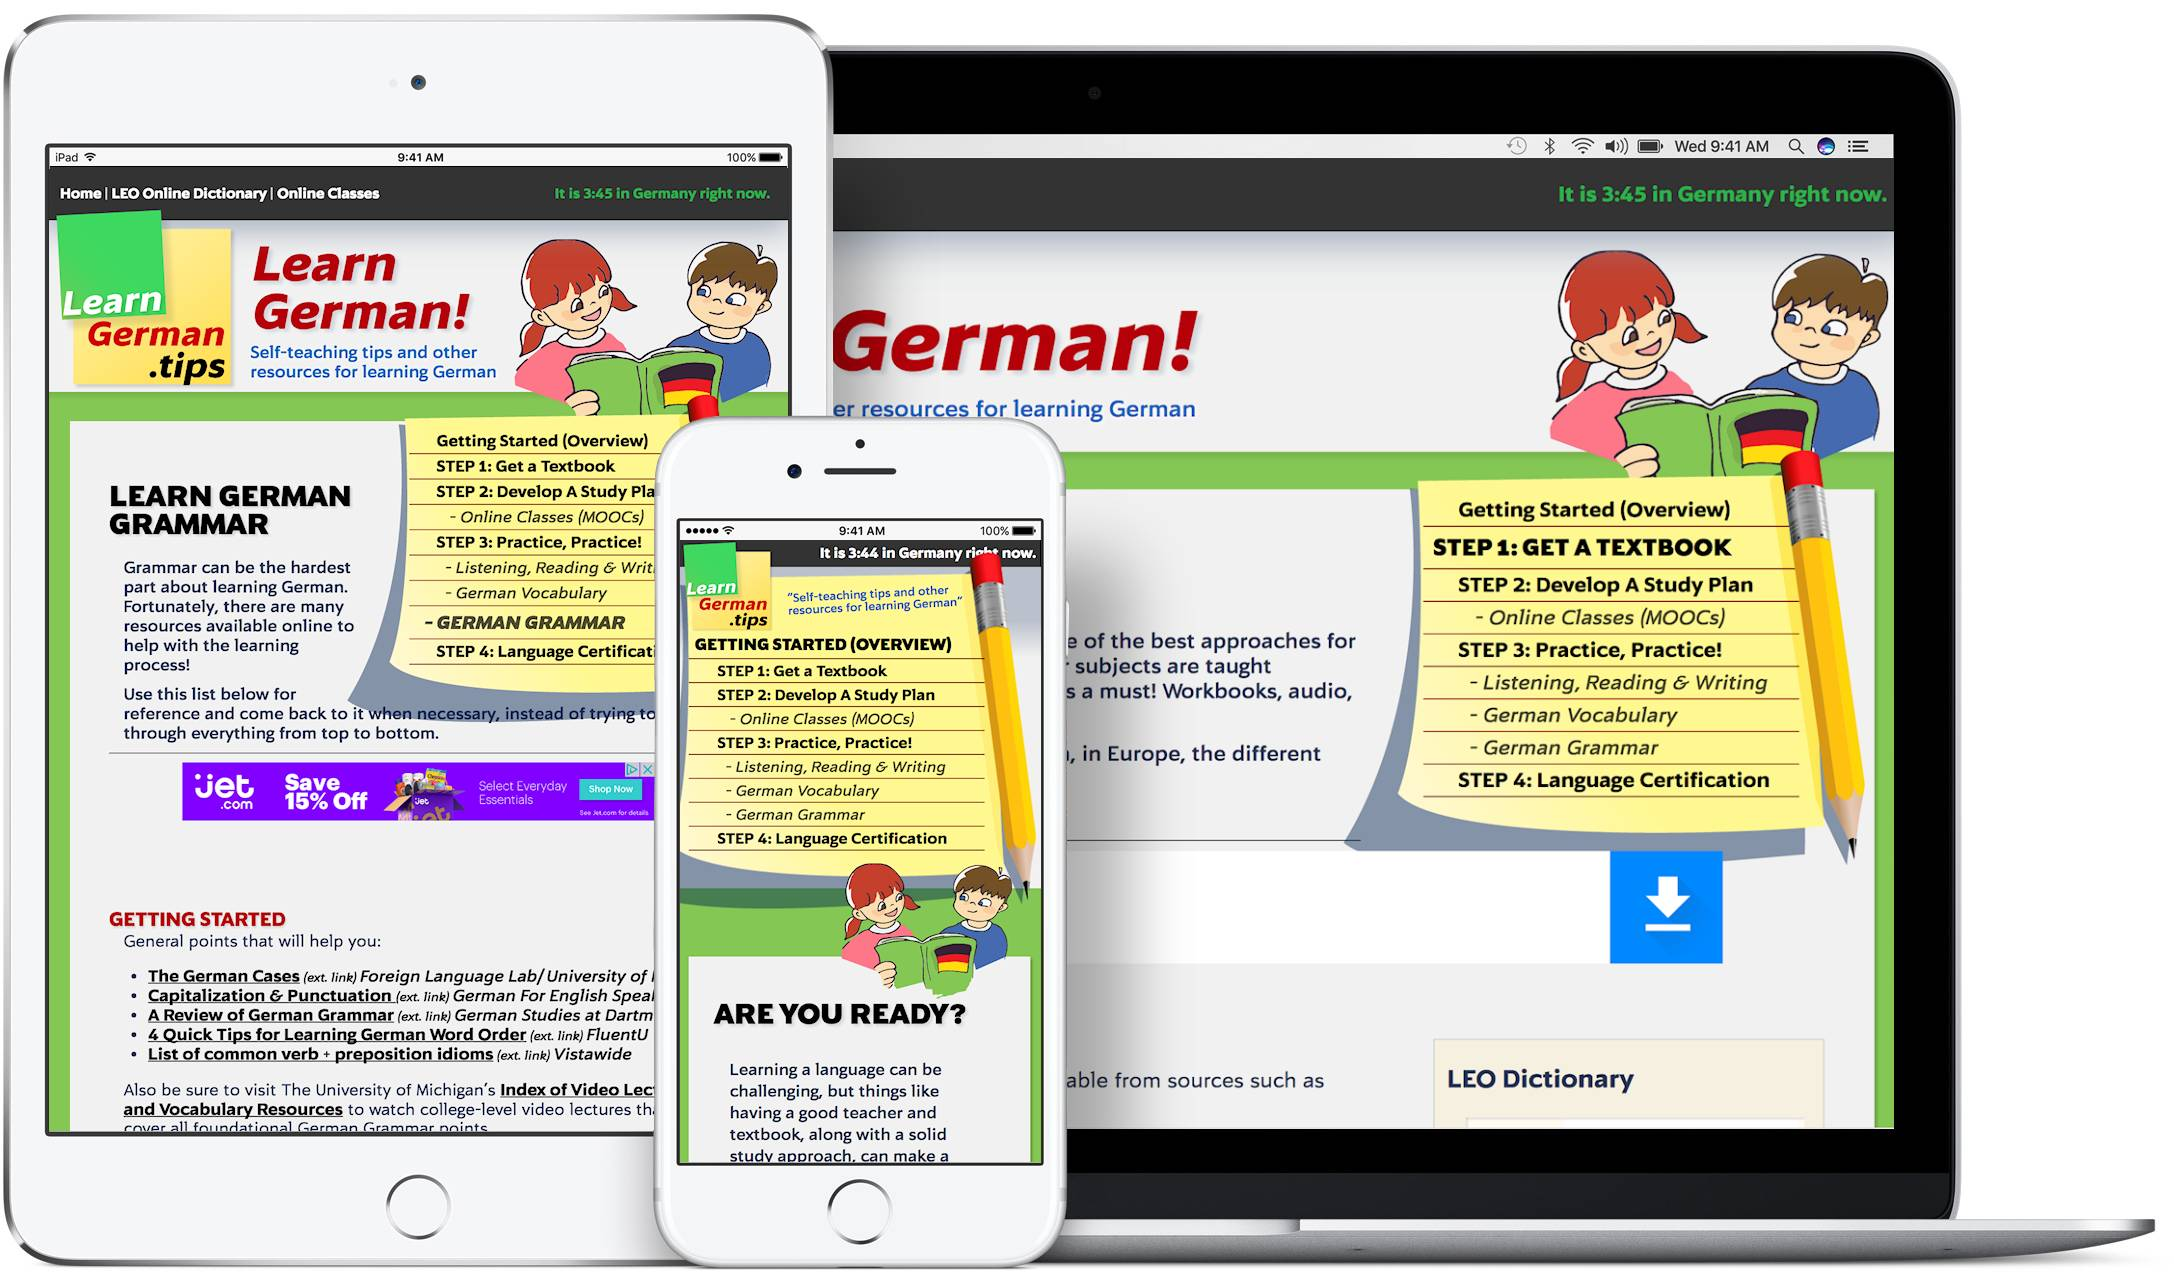 LearnGerman<wbr>.tips screenshots